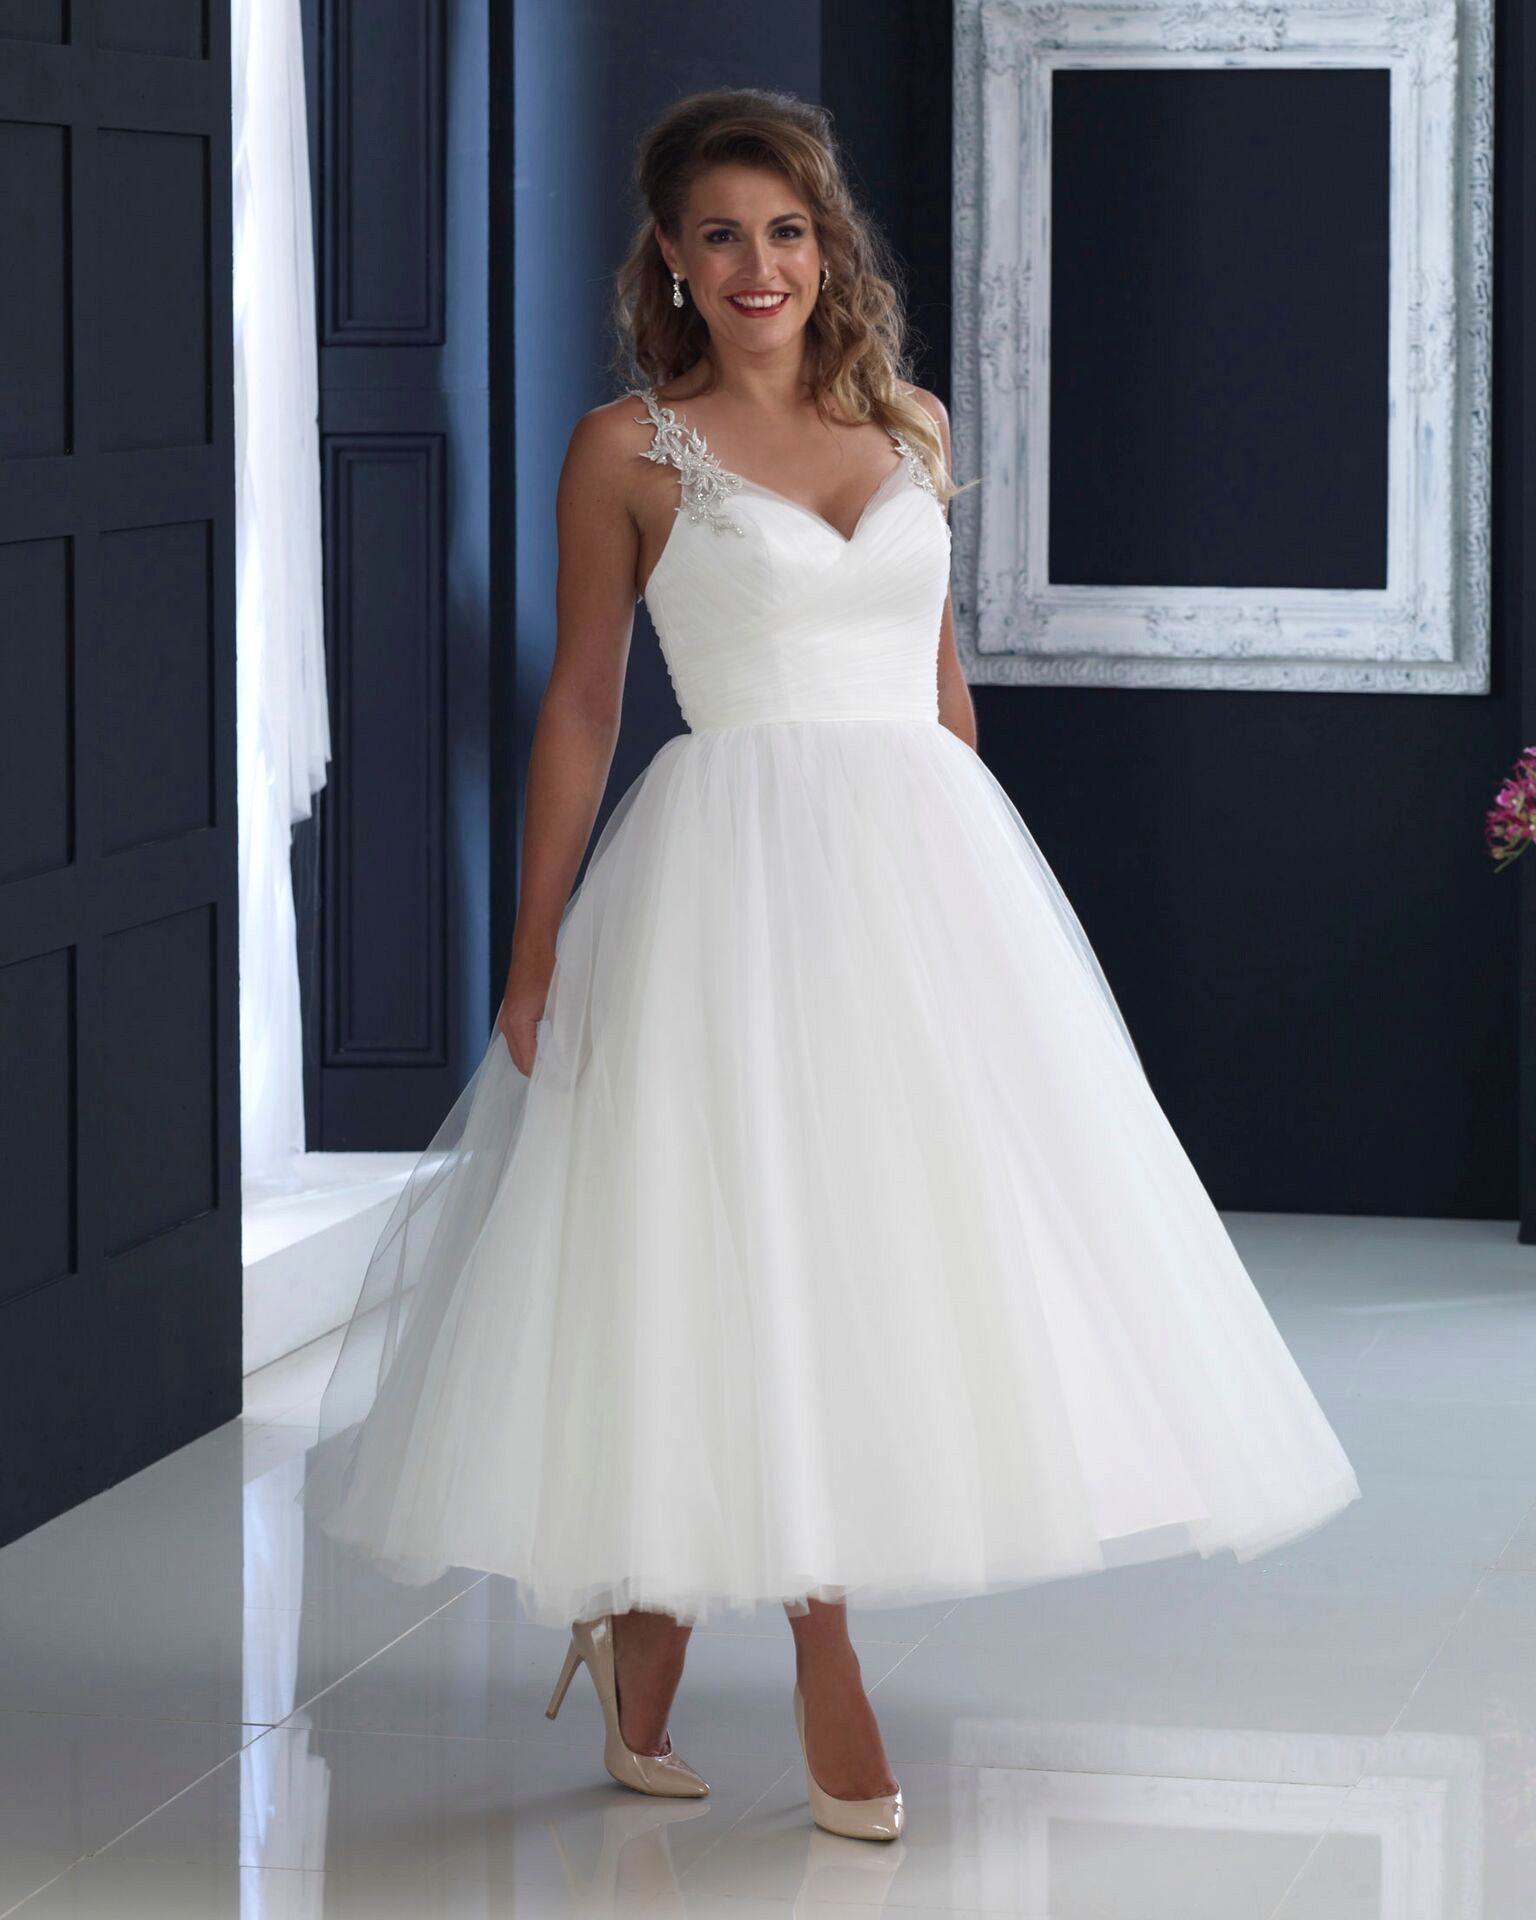 Hnerin Satin And Tulle Tea Length Wedding Gown With Full Skirt: Short Full Skirt Wedding Dress At Reisefeber.org